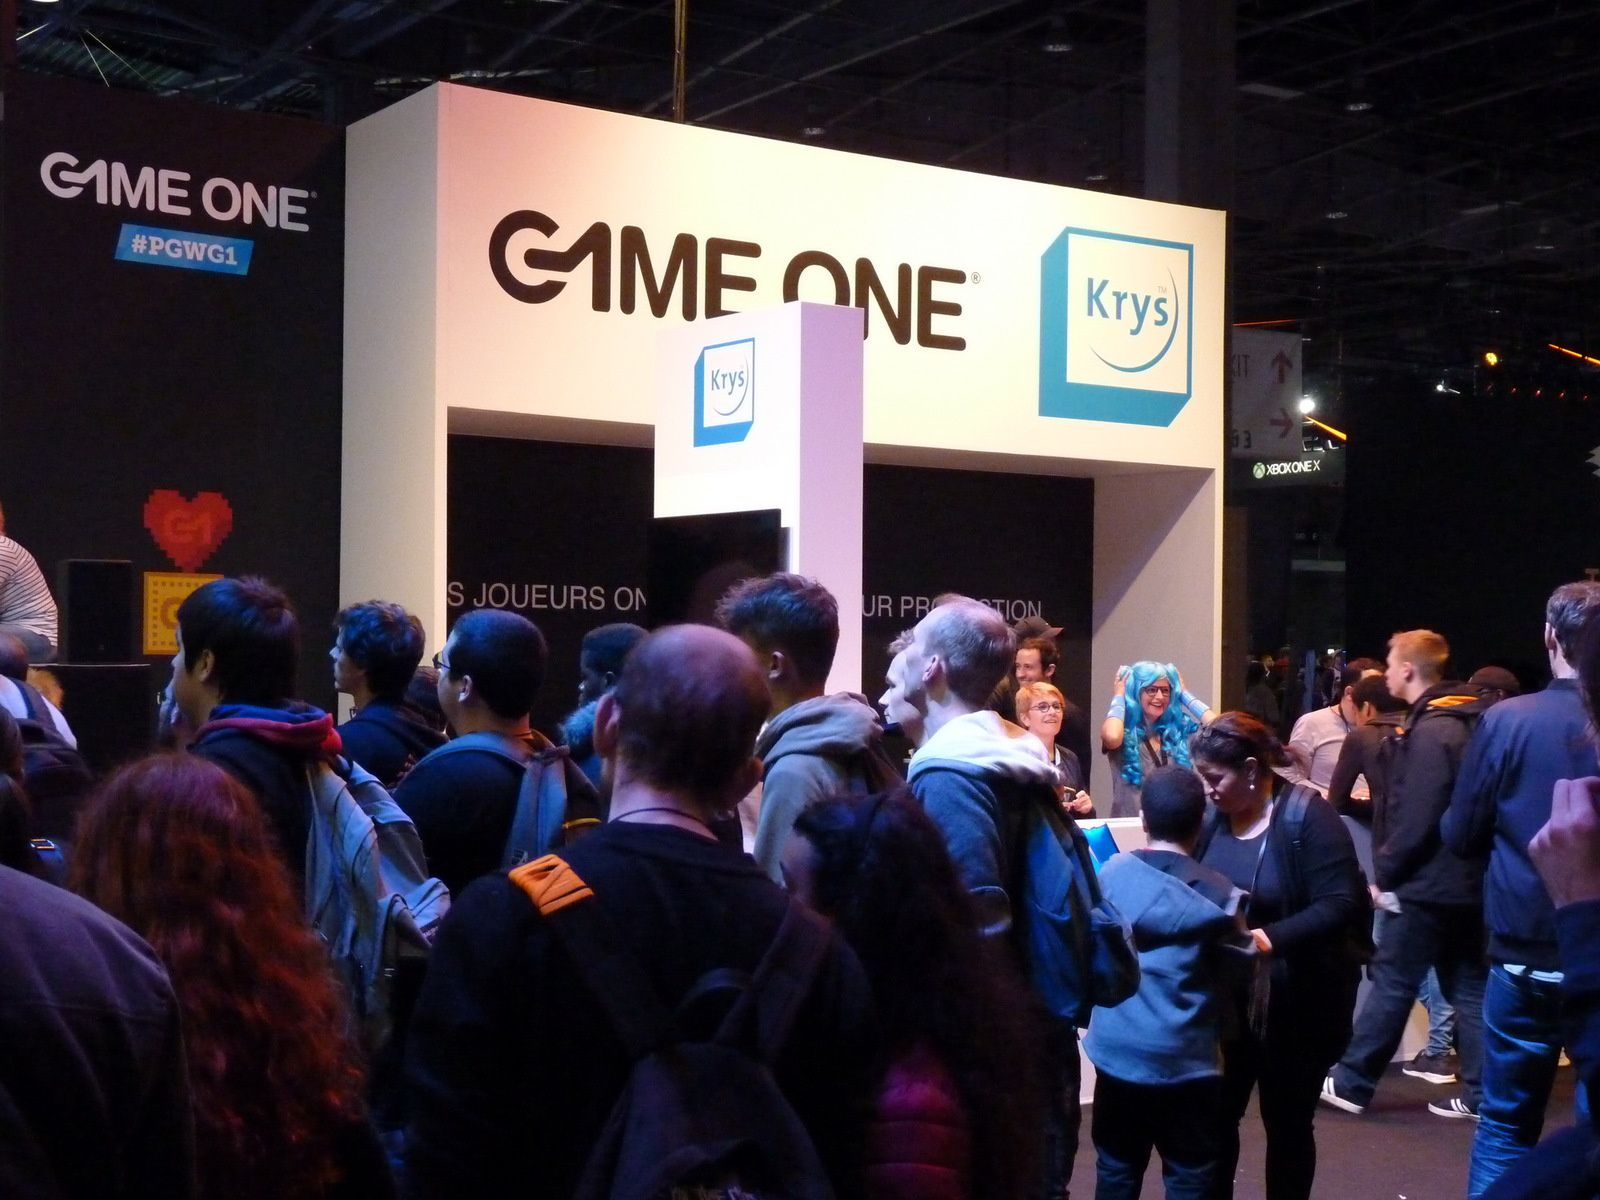 [PARIS GAMES WEEK 2017] Le stand GAME ONE